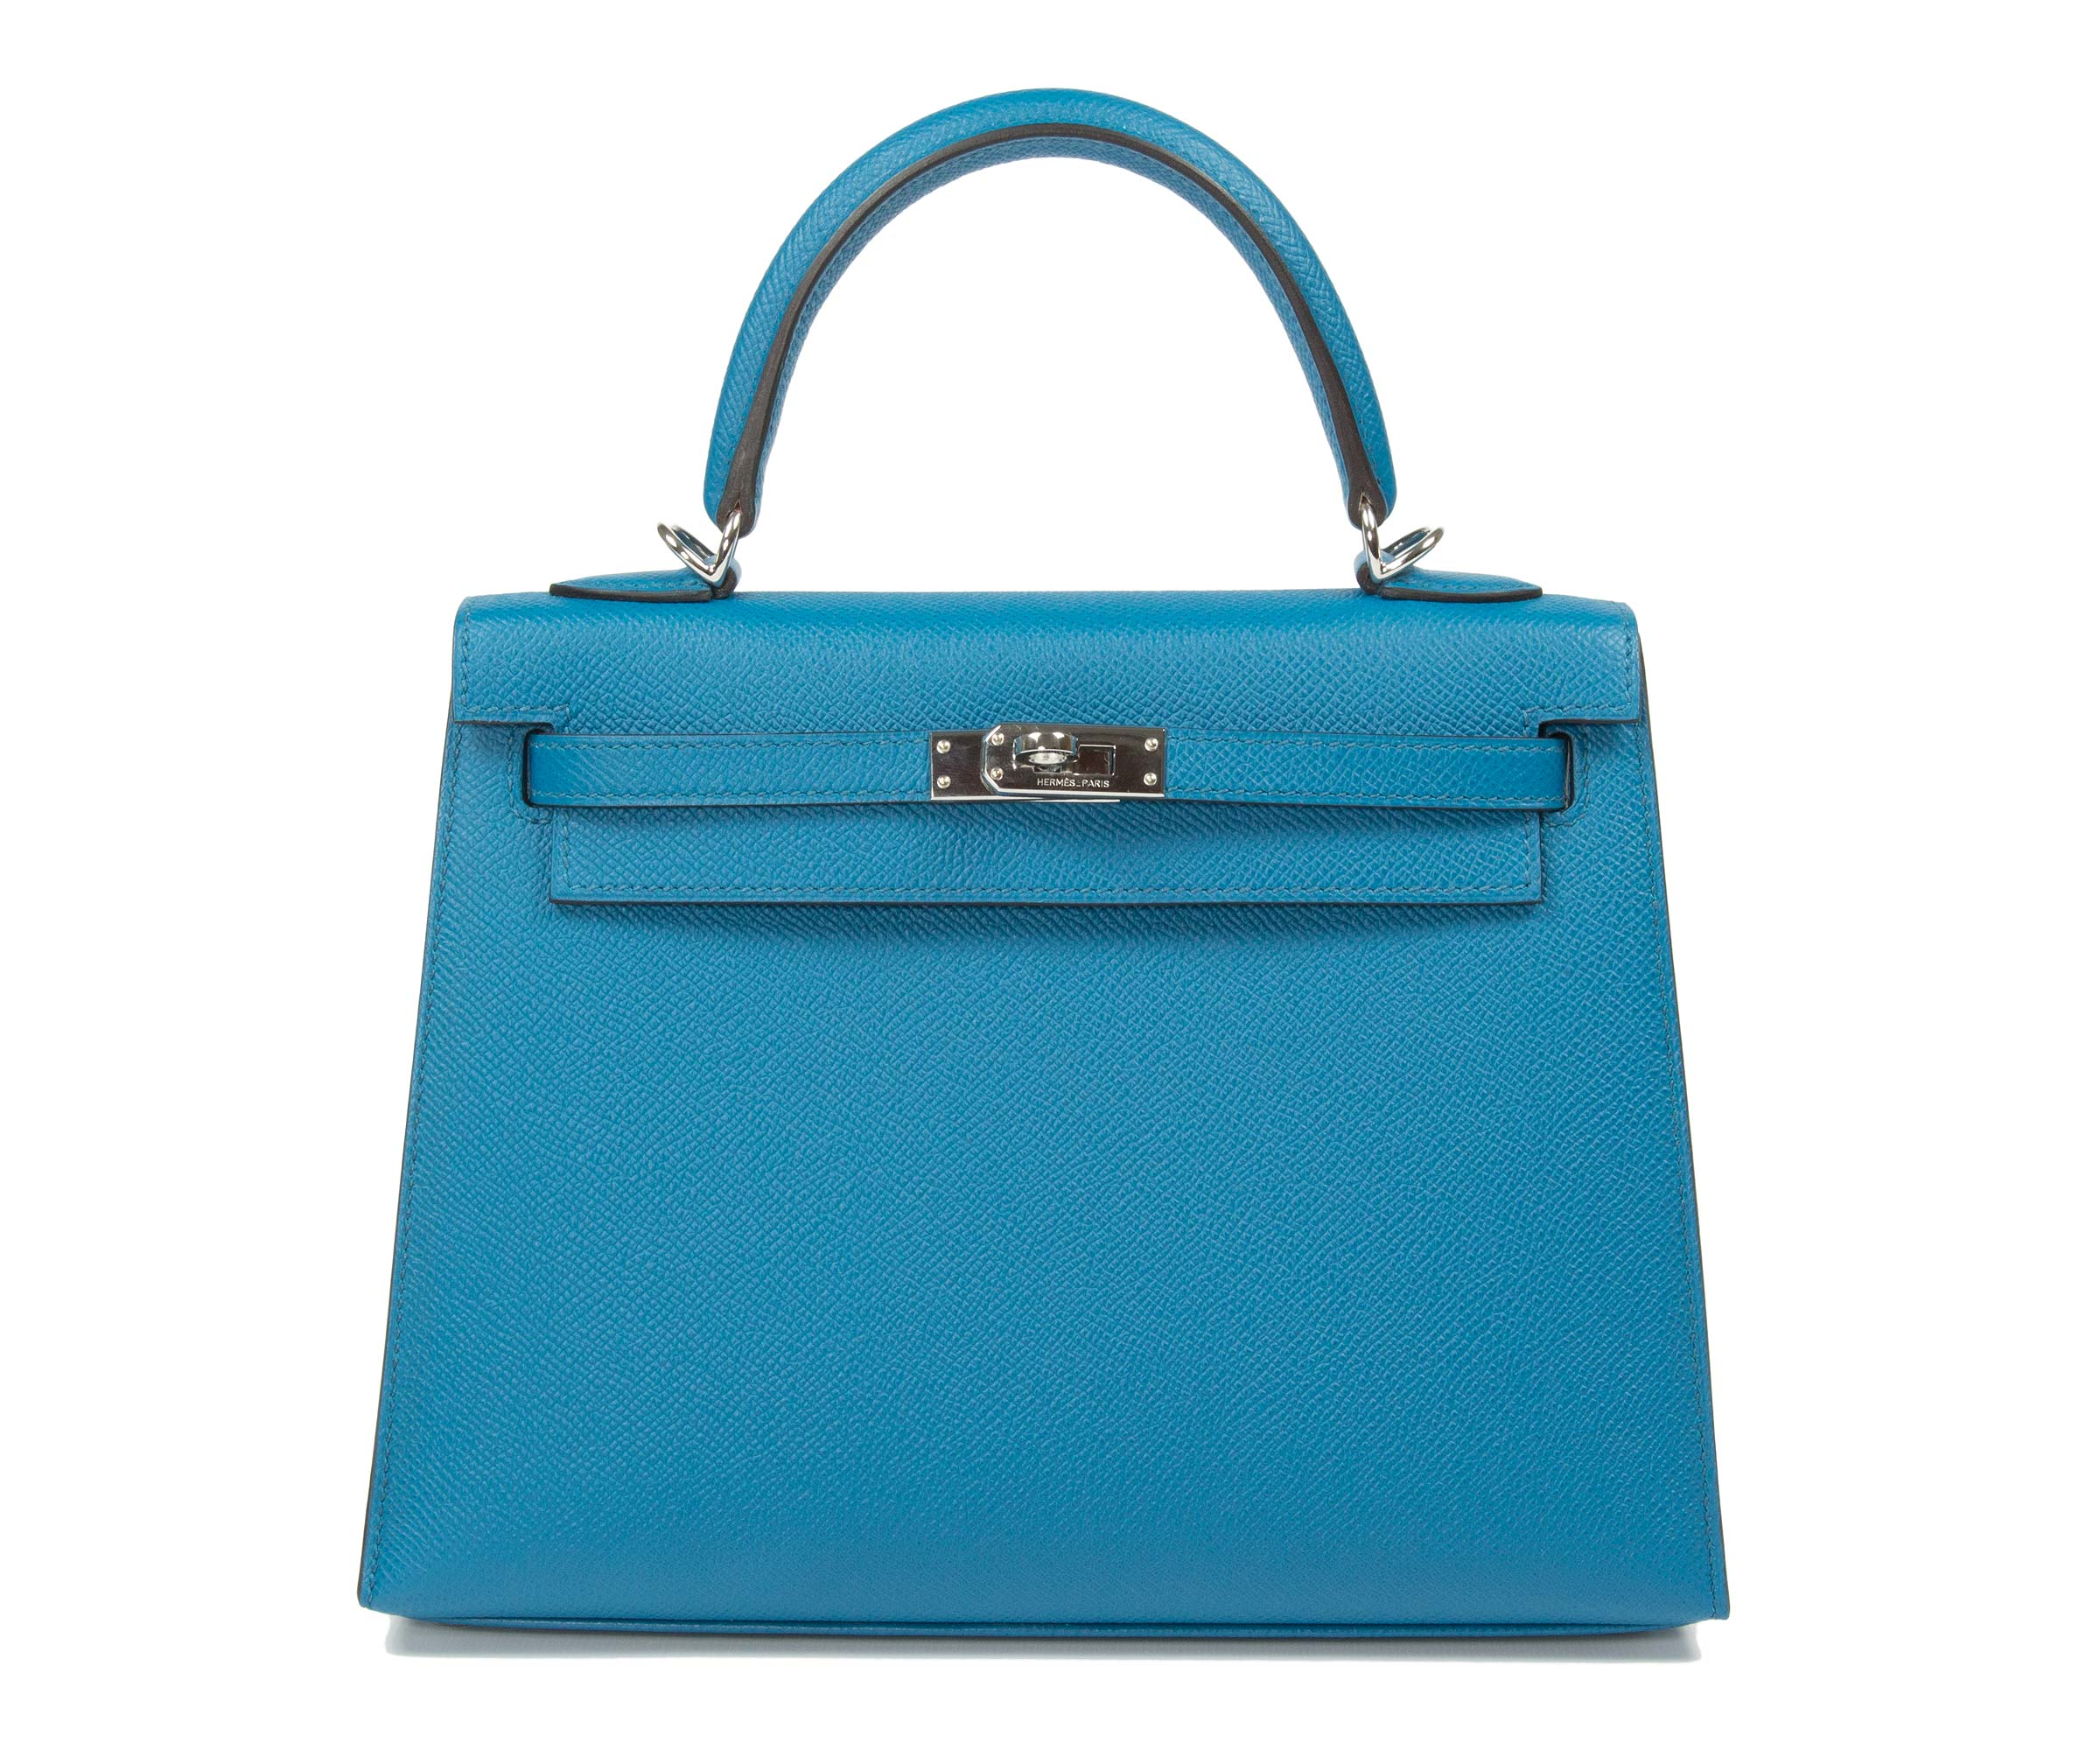 Hermes Kelly Blue Izmire 25cm, Epsom with Palladium Hardware